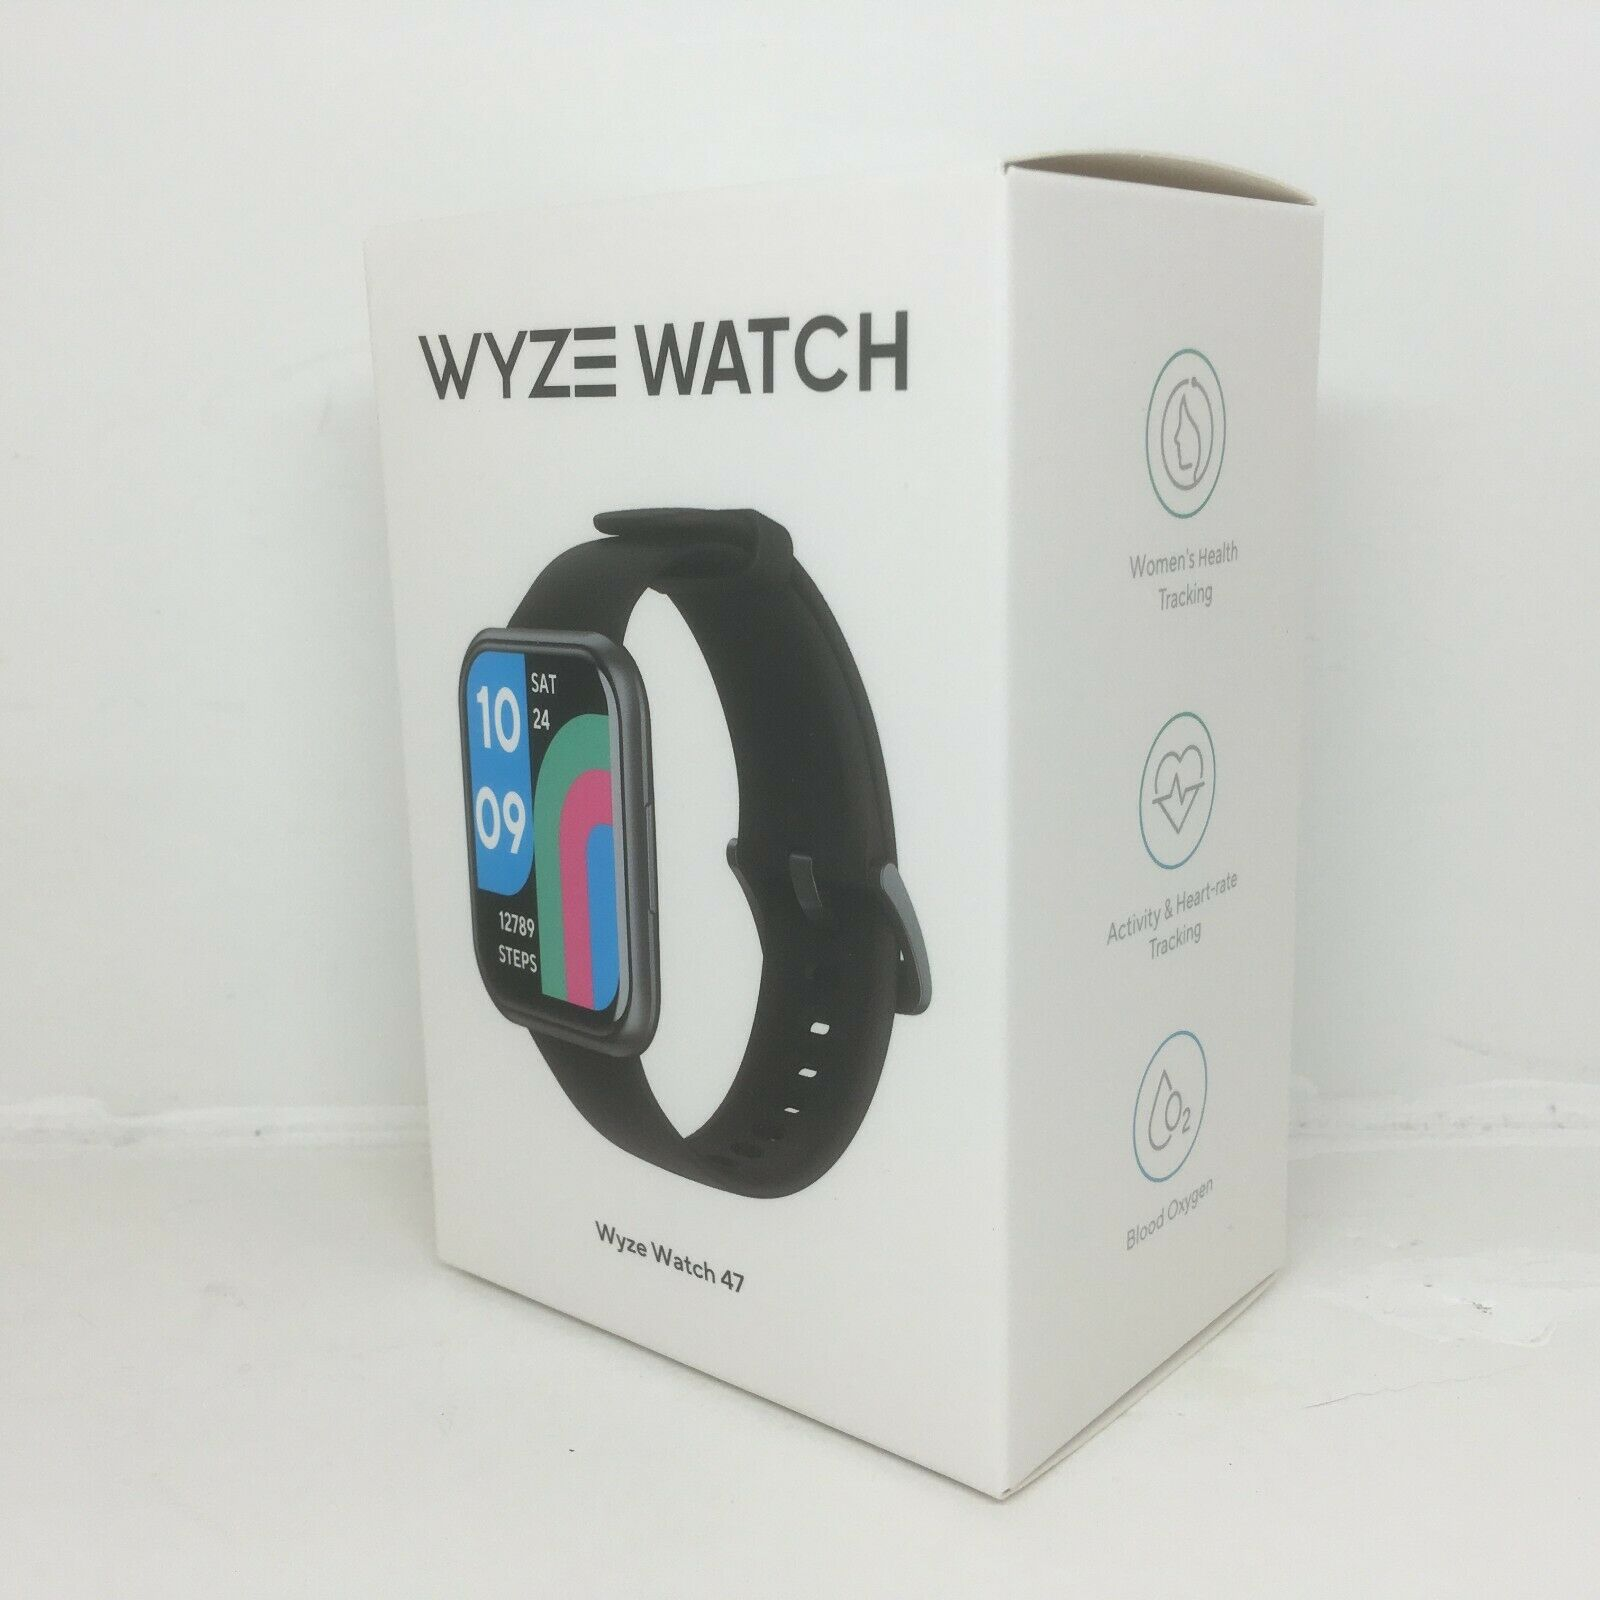 WYZE WATCH 47, NEW: Blood Oxygen, Sleep Tracking, Activity/Heart-Rate Tracking